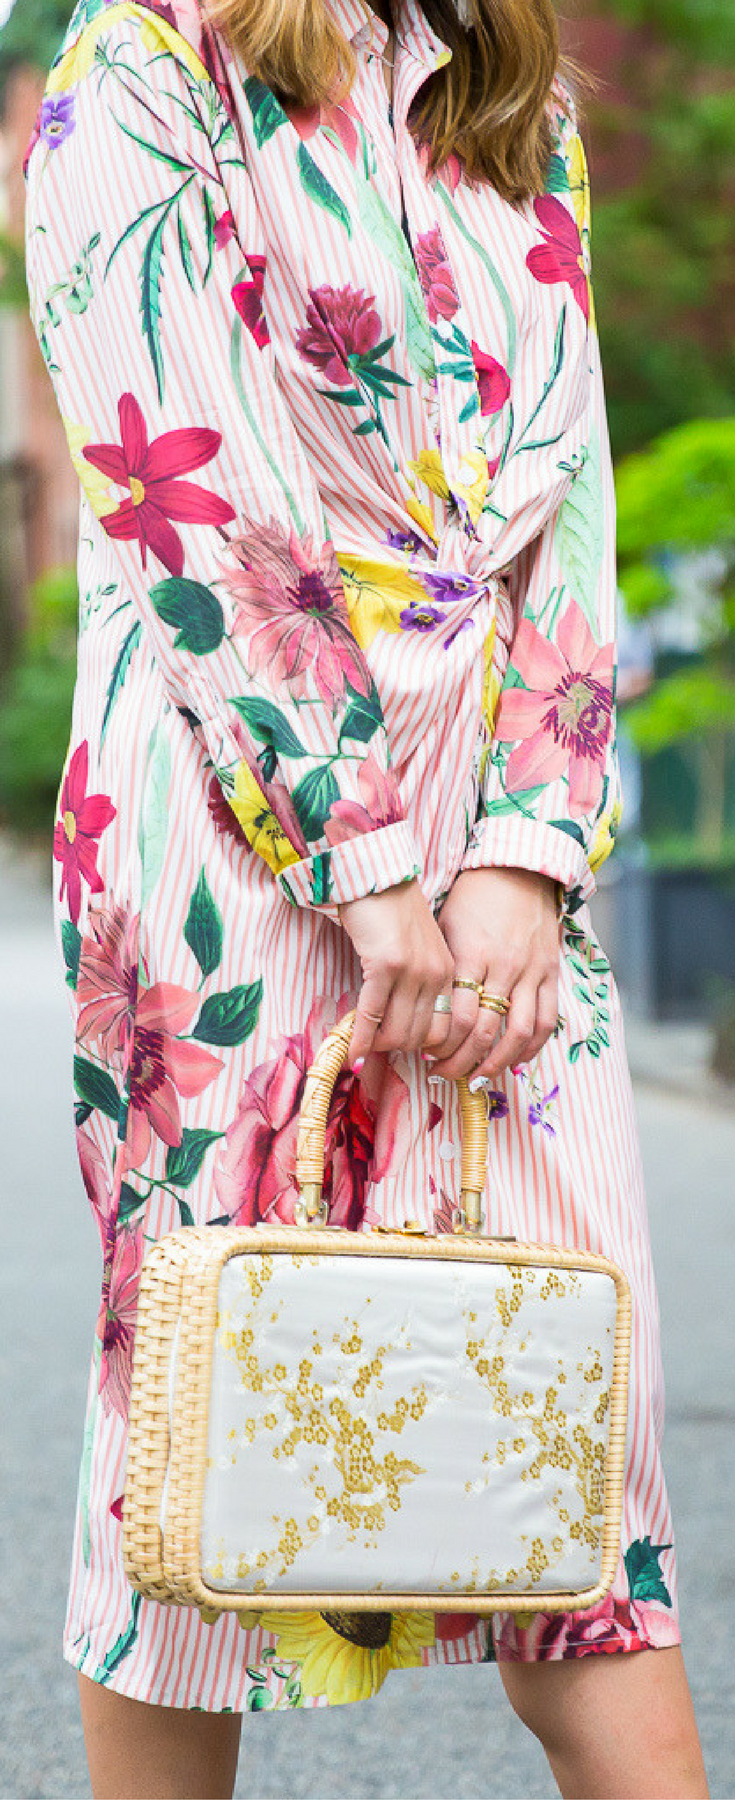 Brooklyn Heights Charm & $26 Floral Shirt Dress